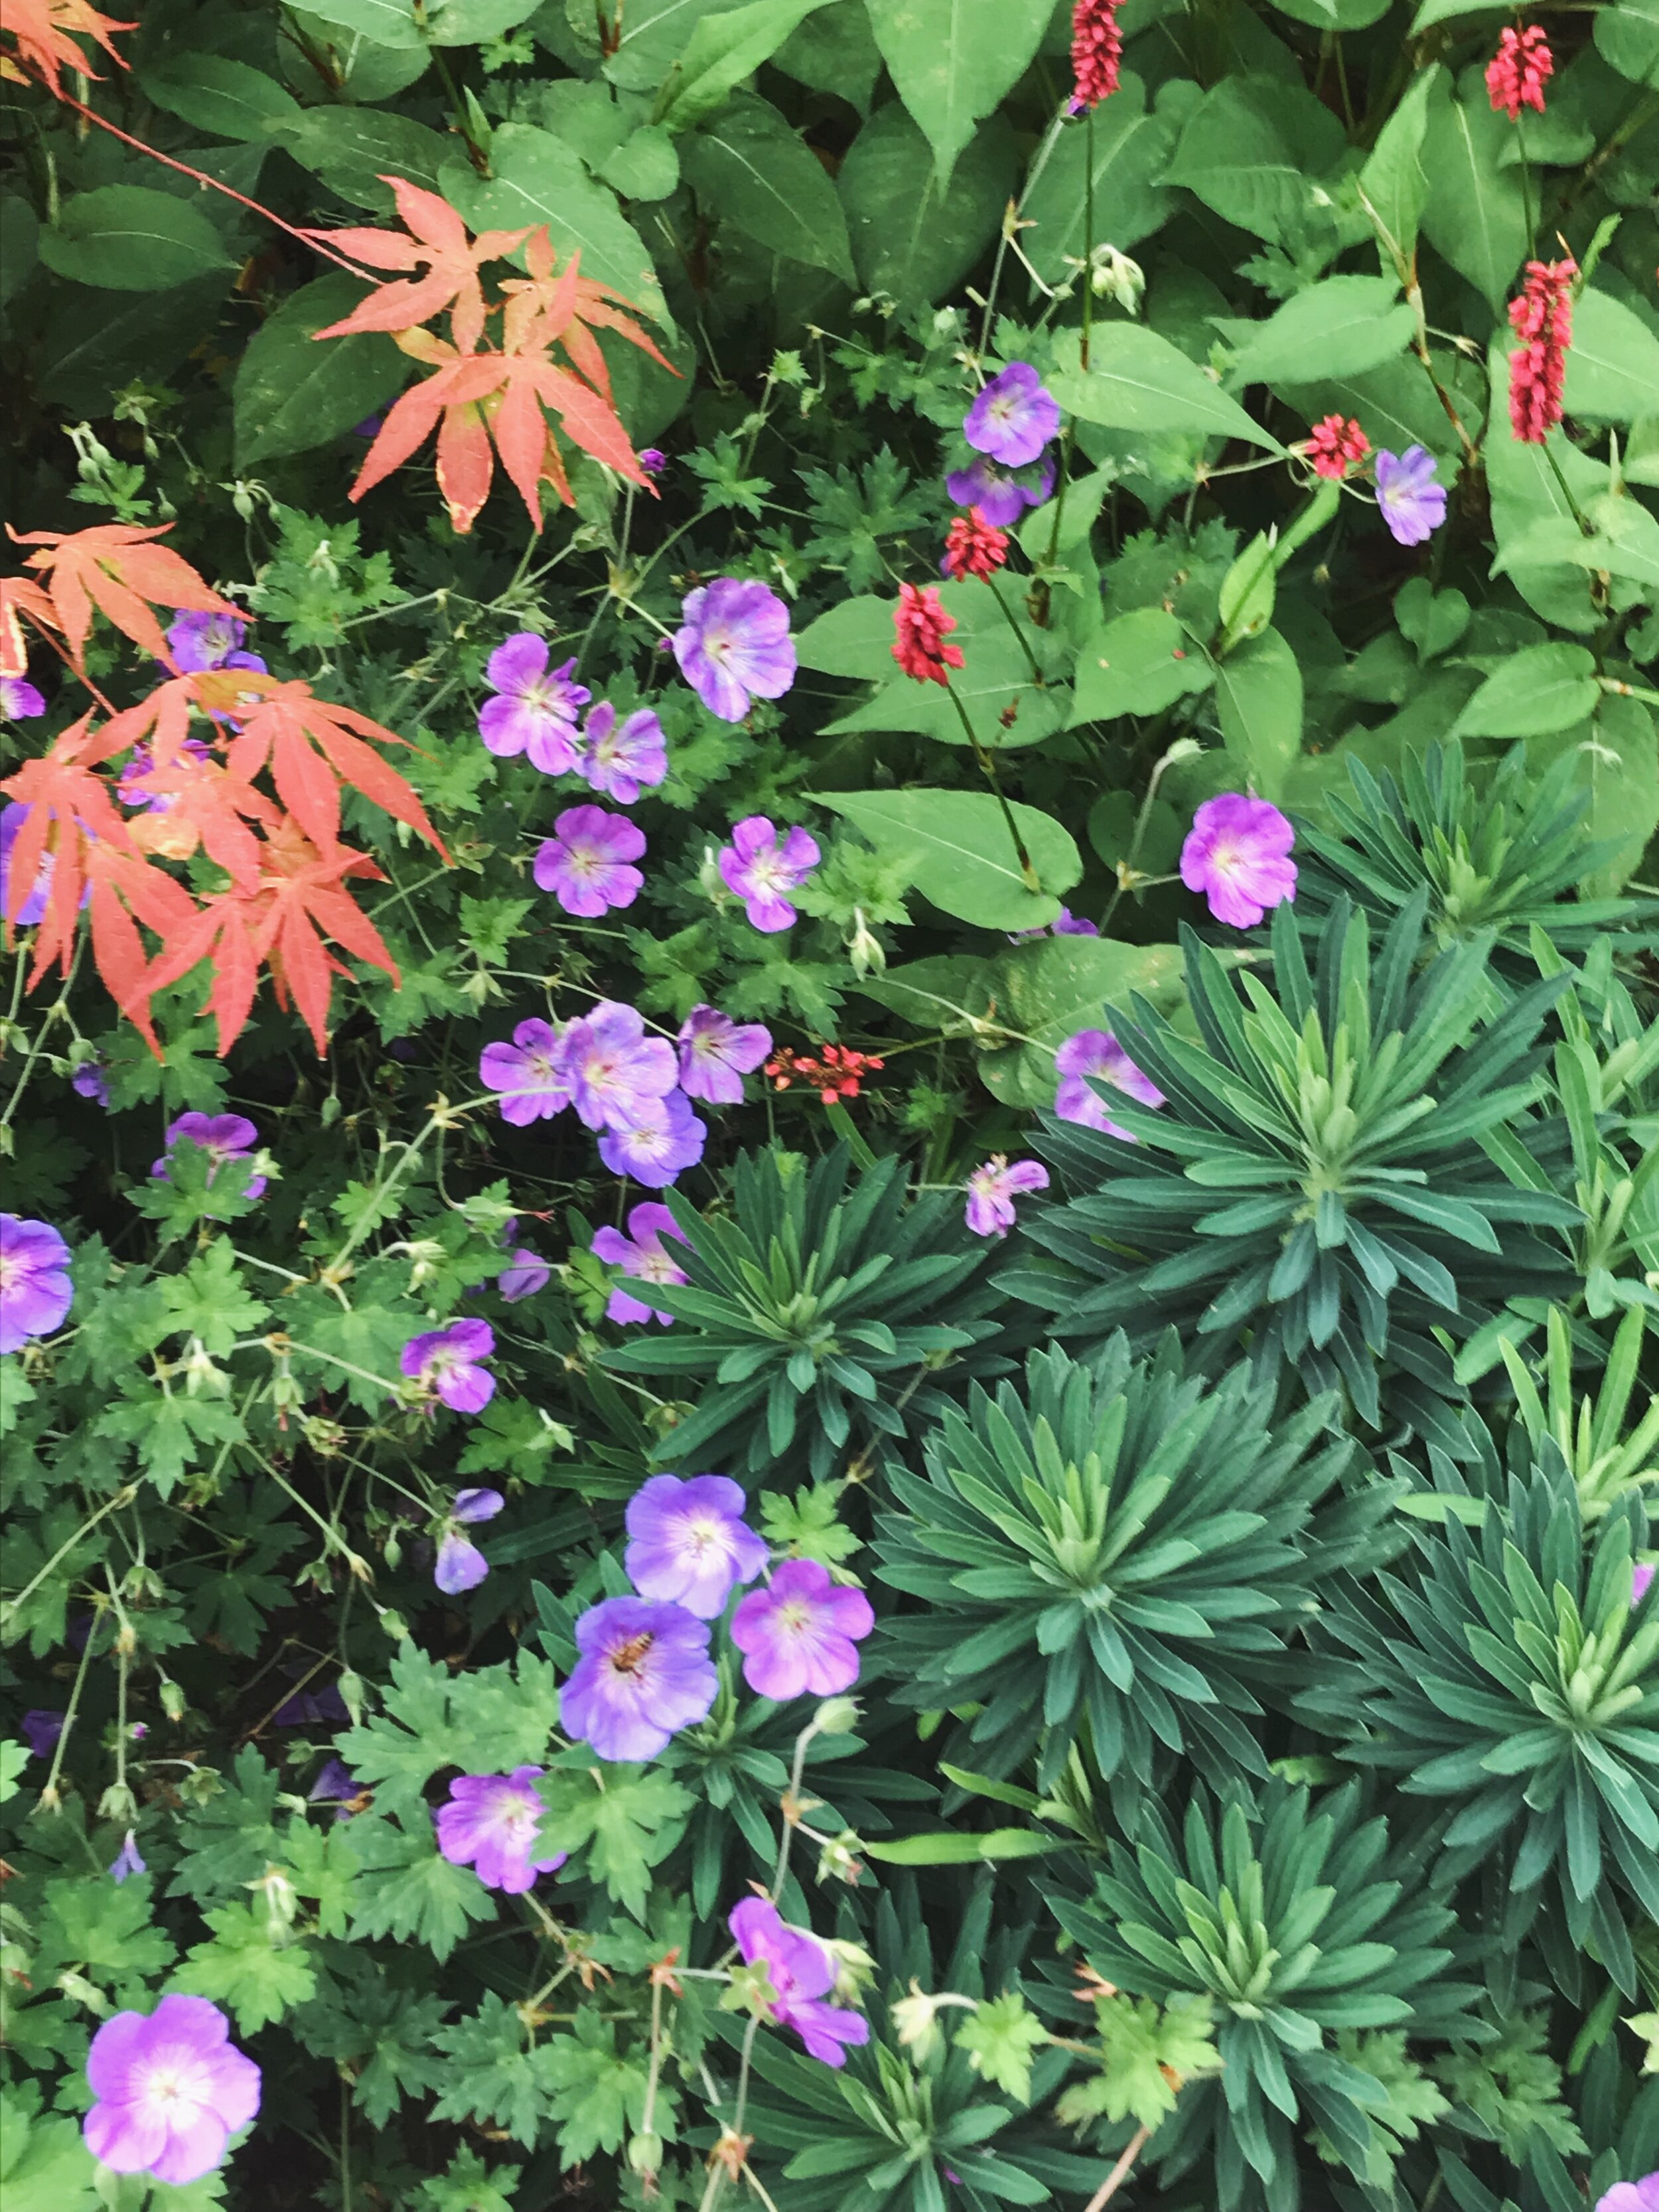 The plants were chosen to give interest over the longest possible time and for contrast of texture, form and colour. Here you see Euphorbia characias, Geranium 'Roxanne', the leaves of Acer palmatum and Persicaria 'Taurus'.